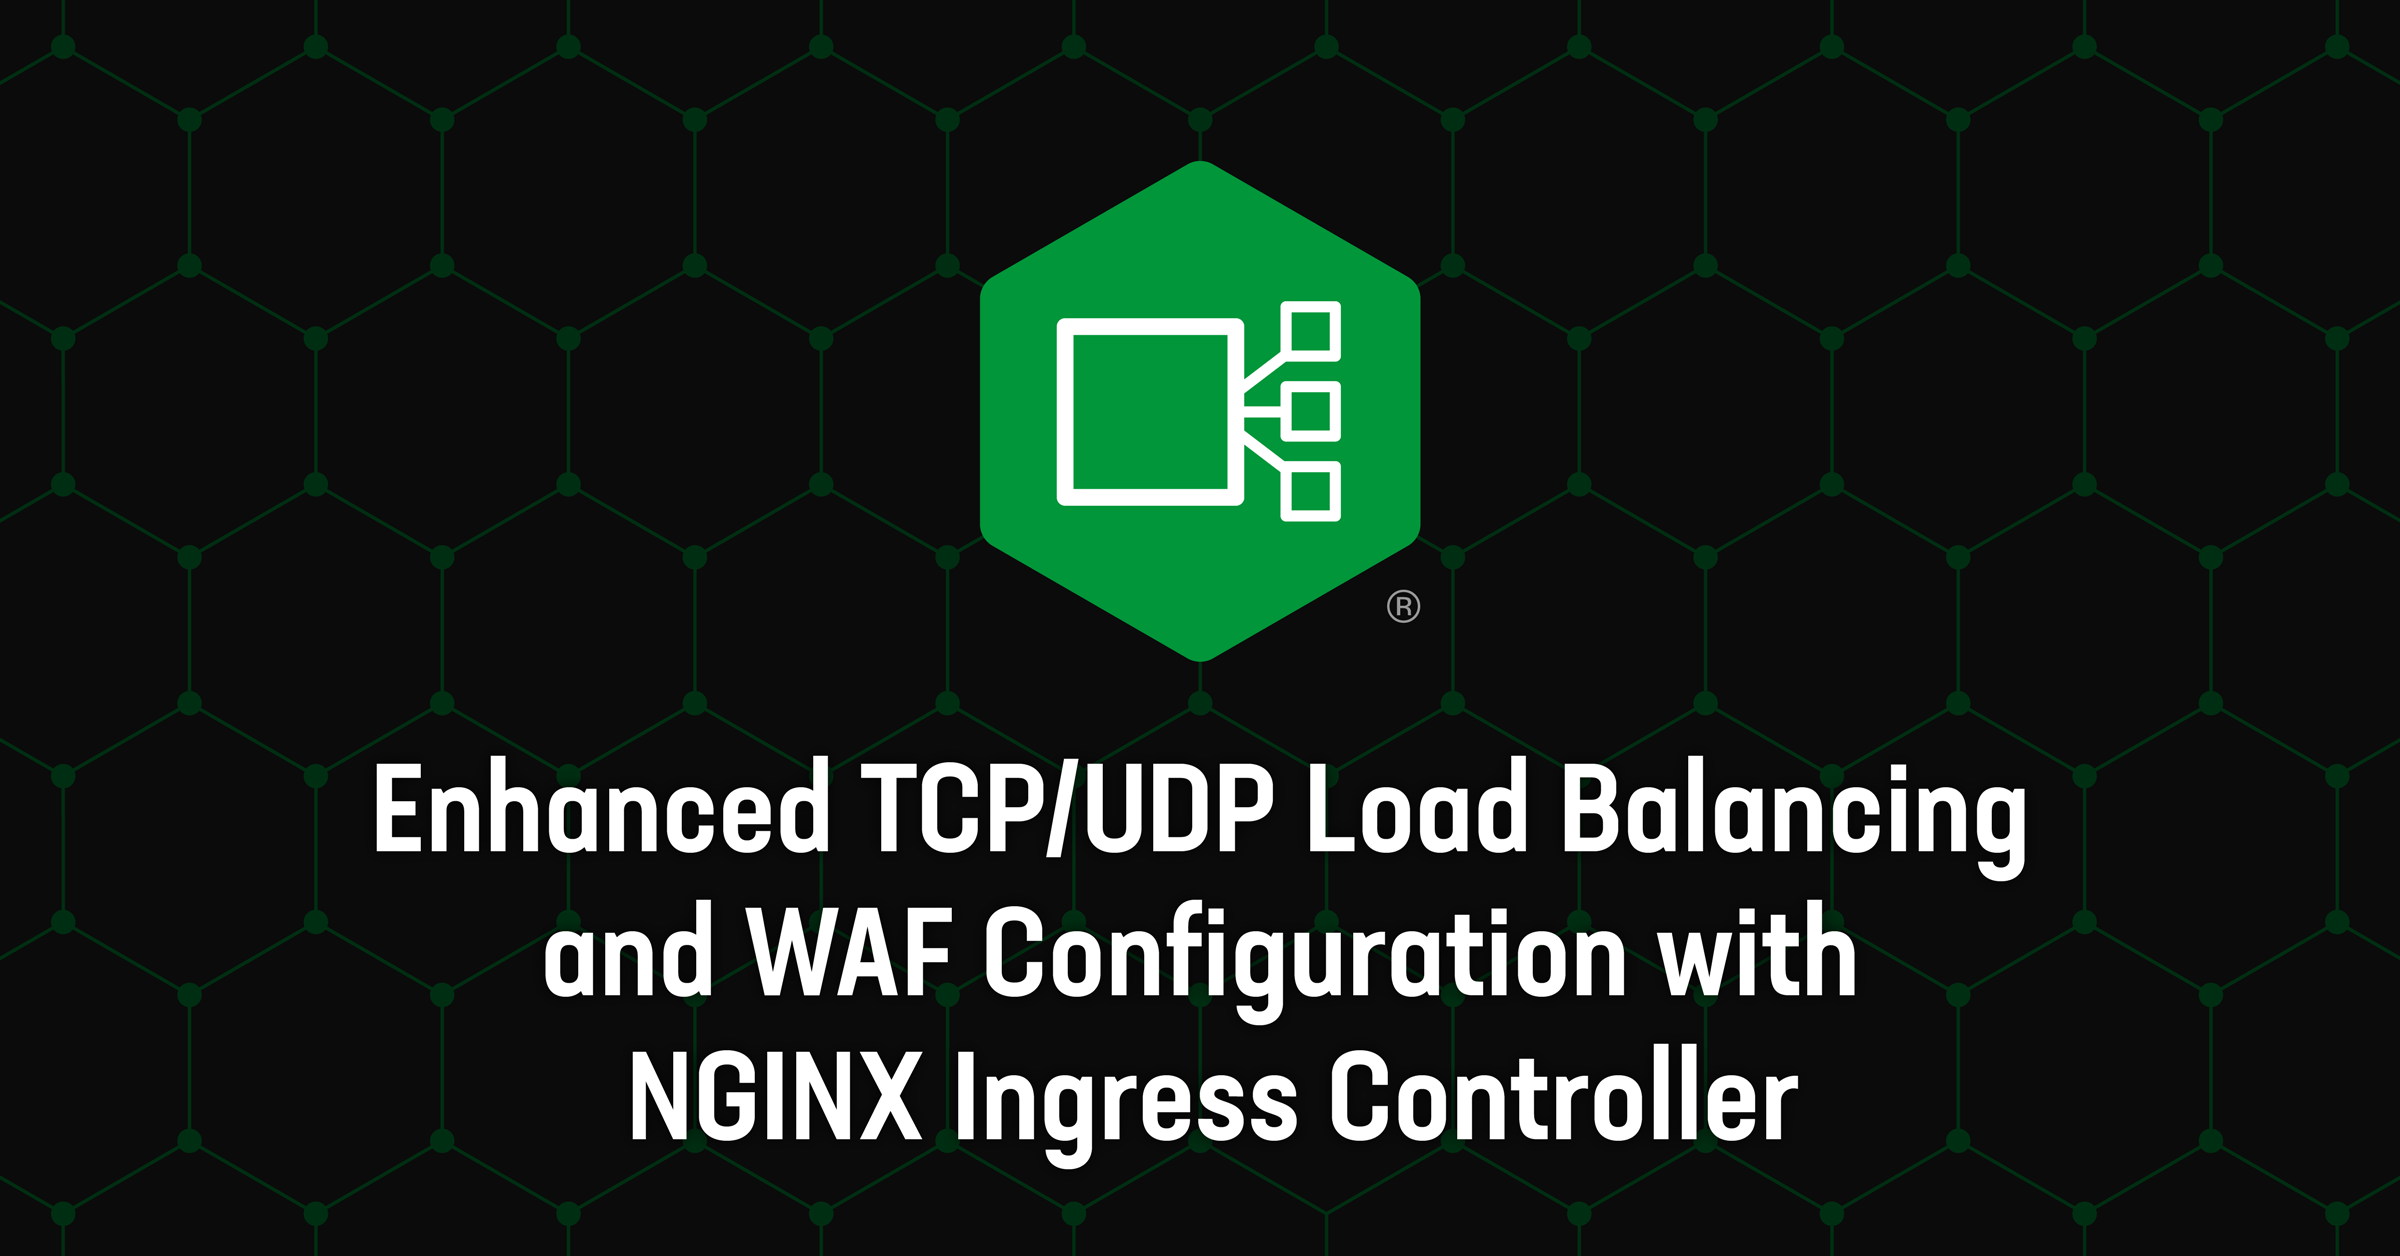 Enhanced TCP/UDP Load Balancing and WAF Configuration with NGINX Ingress Controller